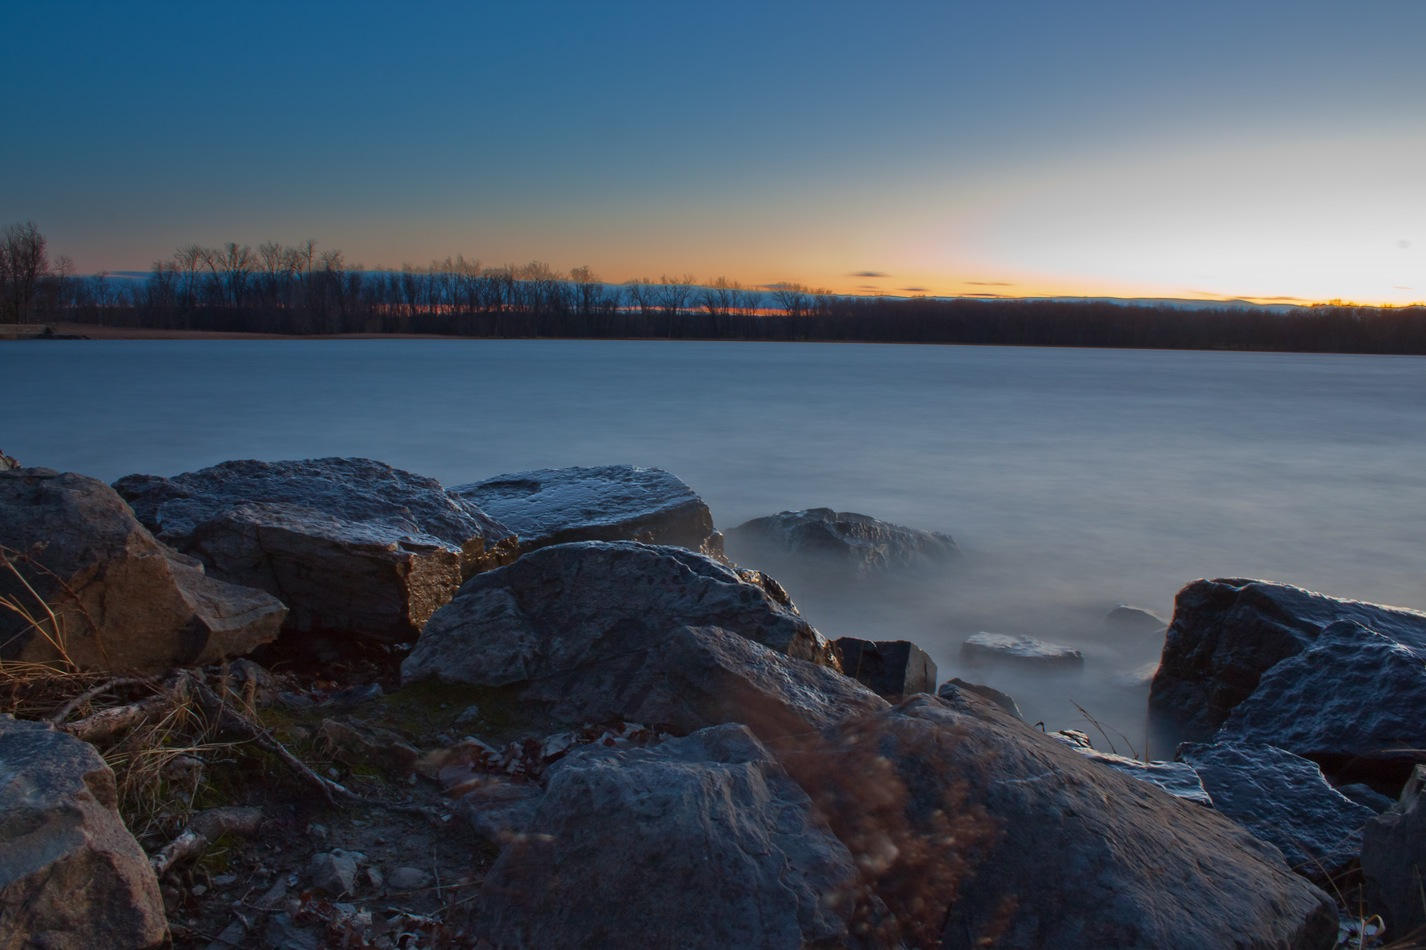 Test Shot - Long Exposure and ND Filters